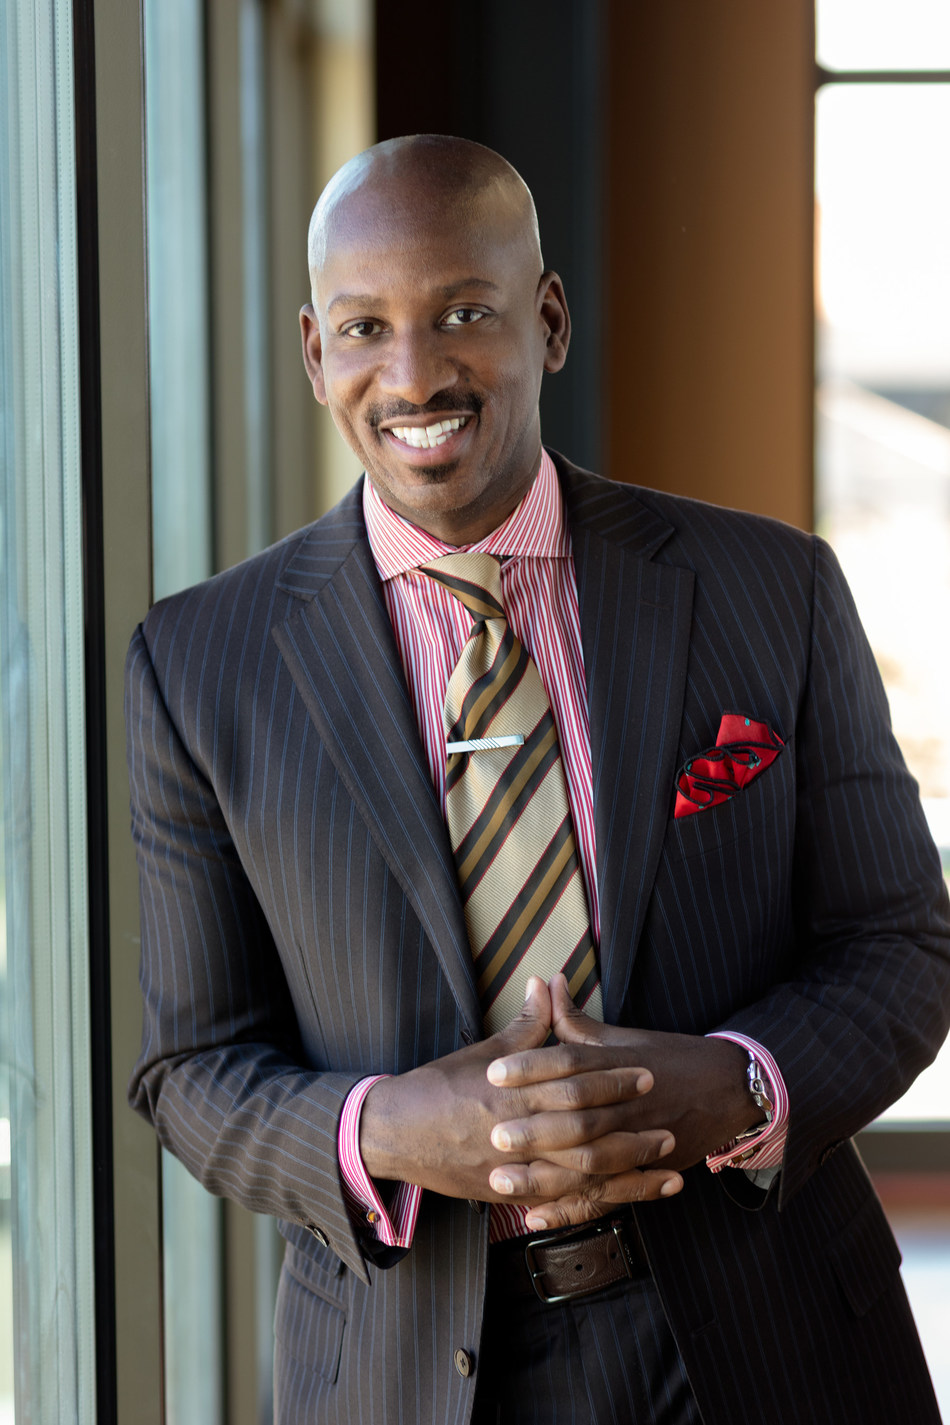 Irvin Bishop, Jr., Executive Vice President, Digital and Strategic Planning, Young Living Essential Oils